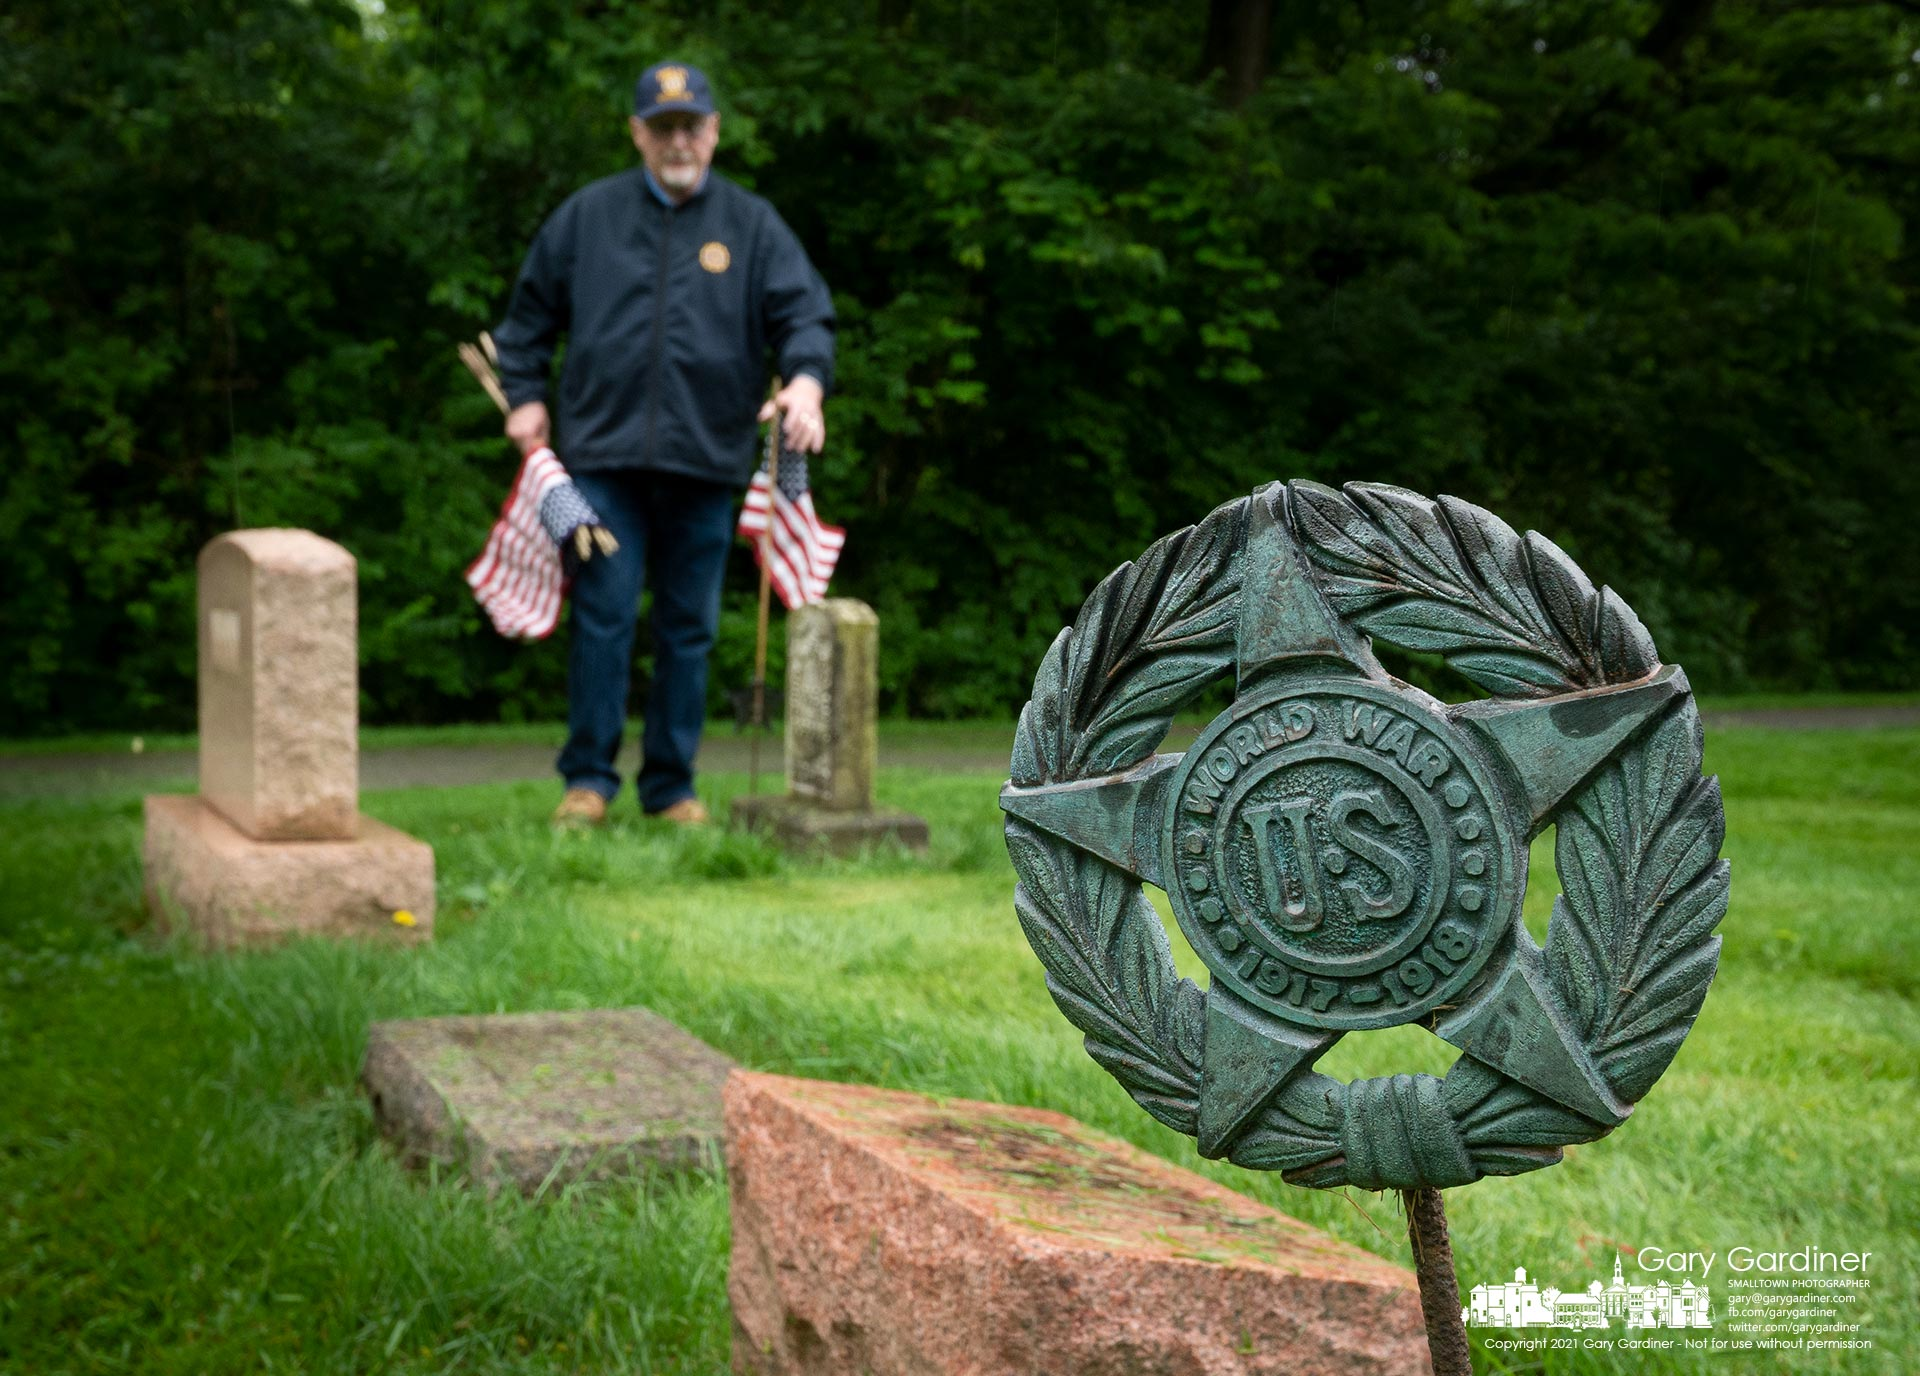 Members of the Westerville American Legion post set out flags for veterans at Otterbein Cemetery, one of two local cemeteries they care for on Memorial Day weekend. My Final Photo for May 28, 2021.